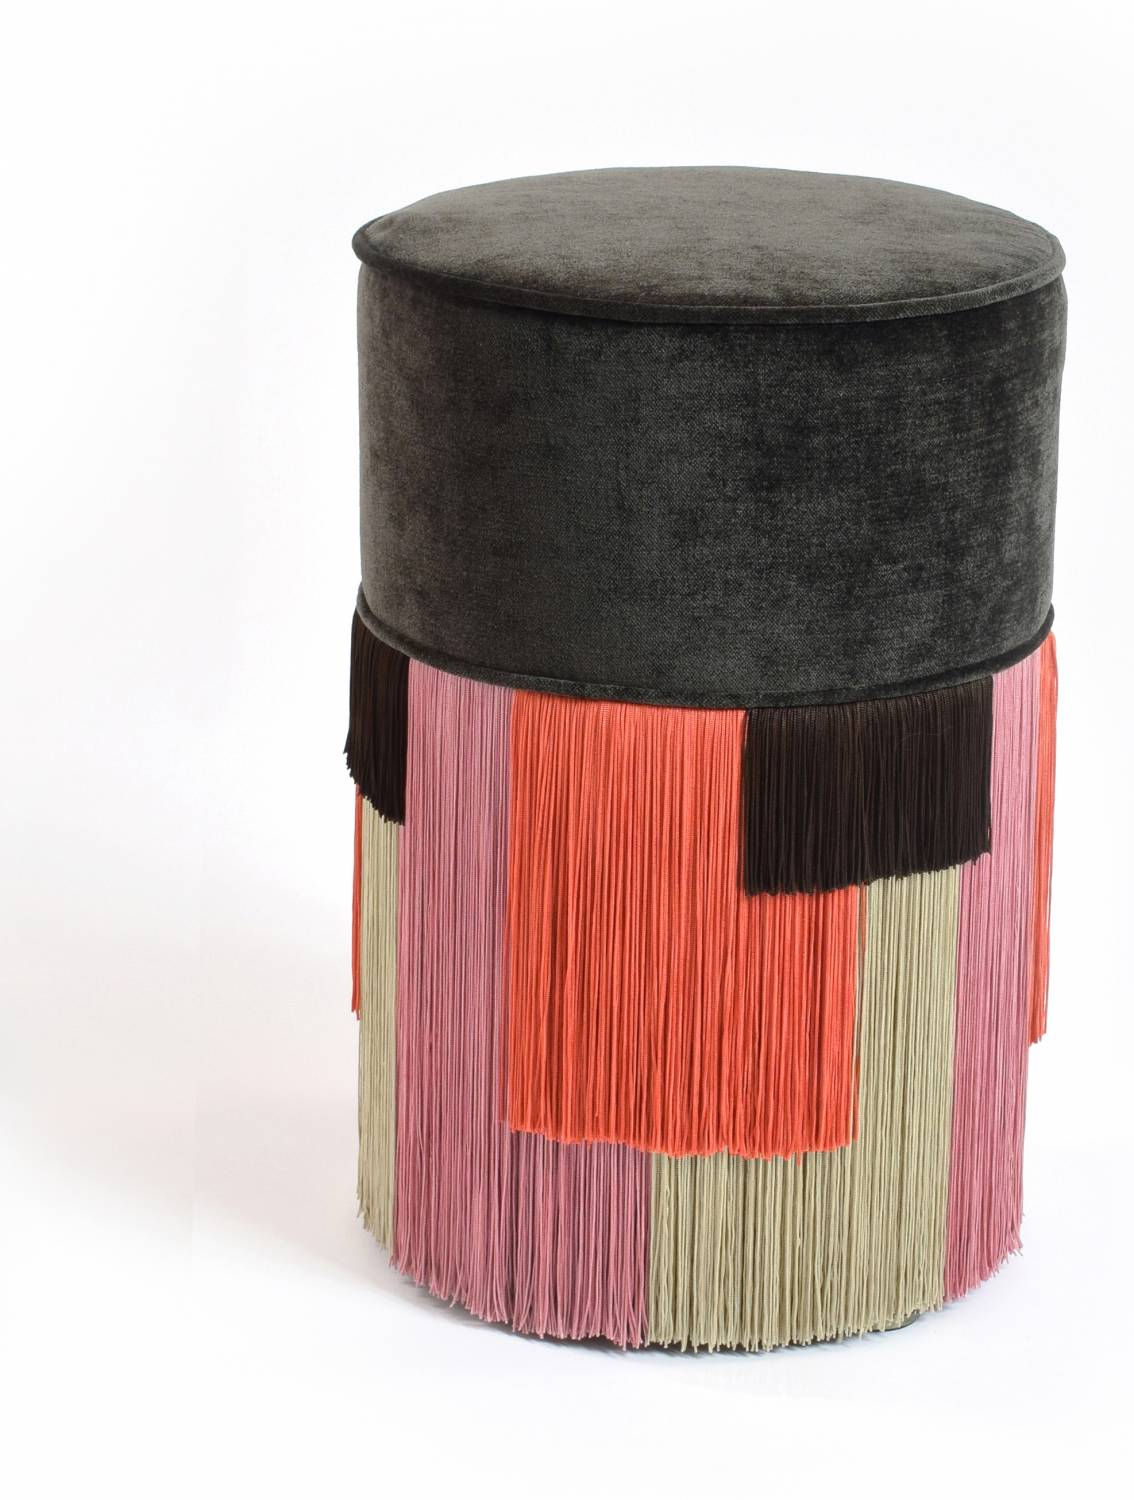 Couture pouf collection by Lorenza Bozzoli | Flodeau.com